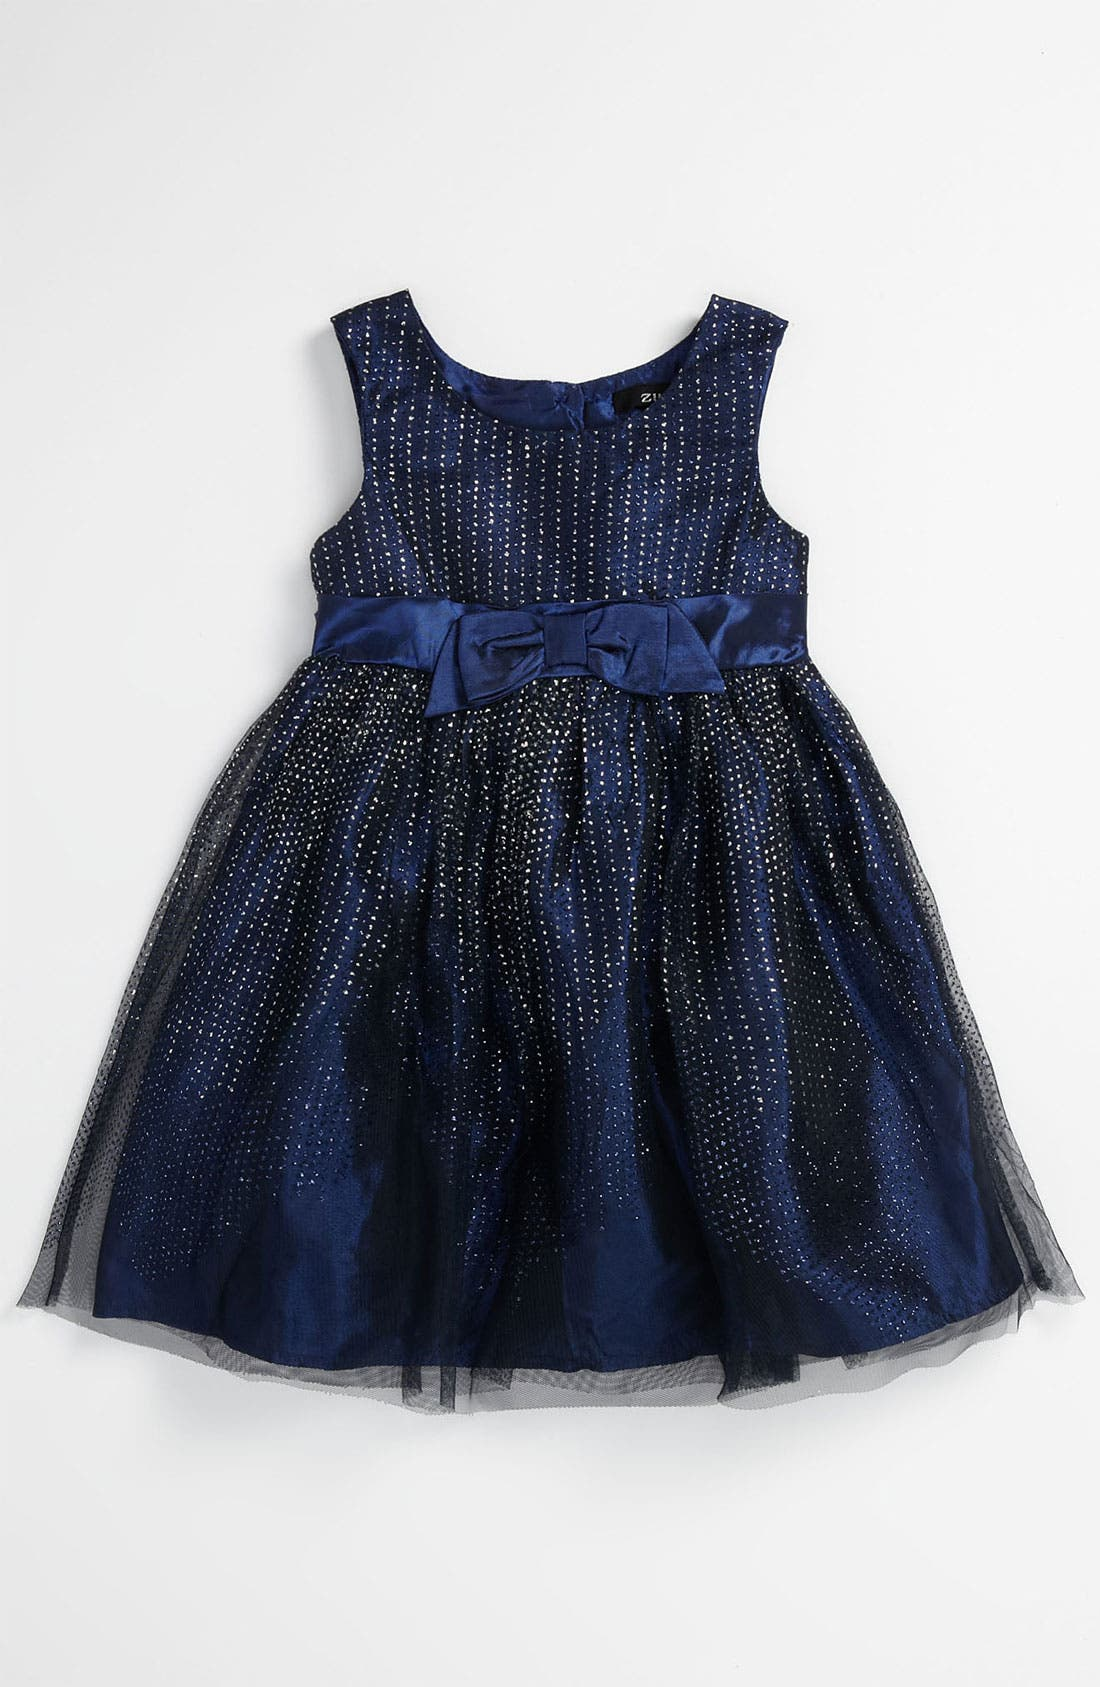 Alternate Image 1 Selected - Zunie Studded Dress (Toddler)